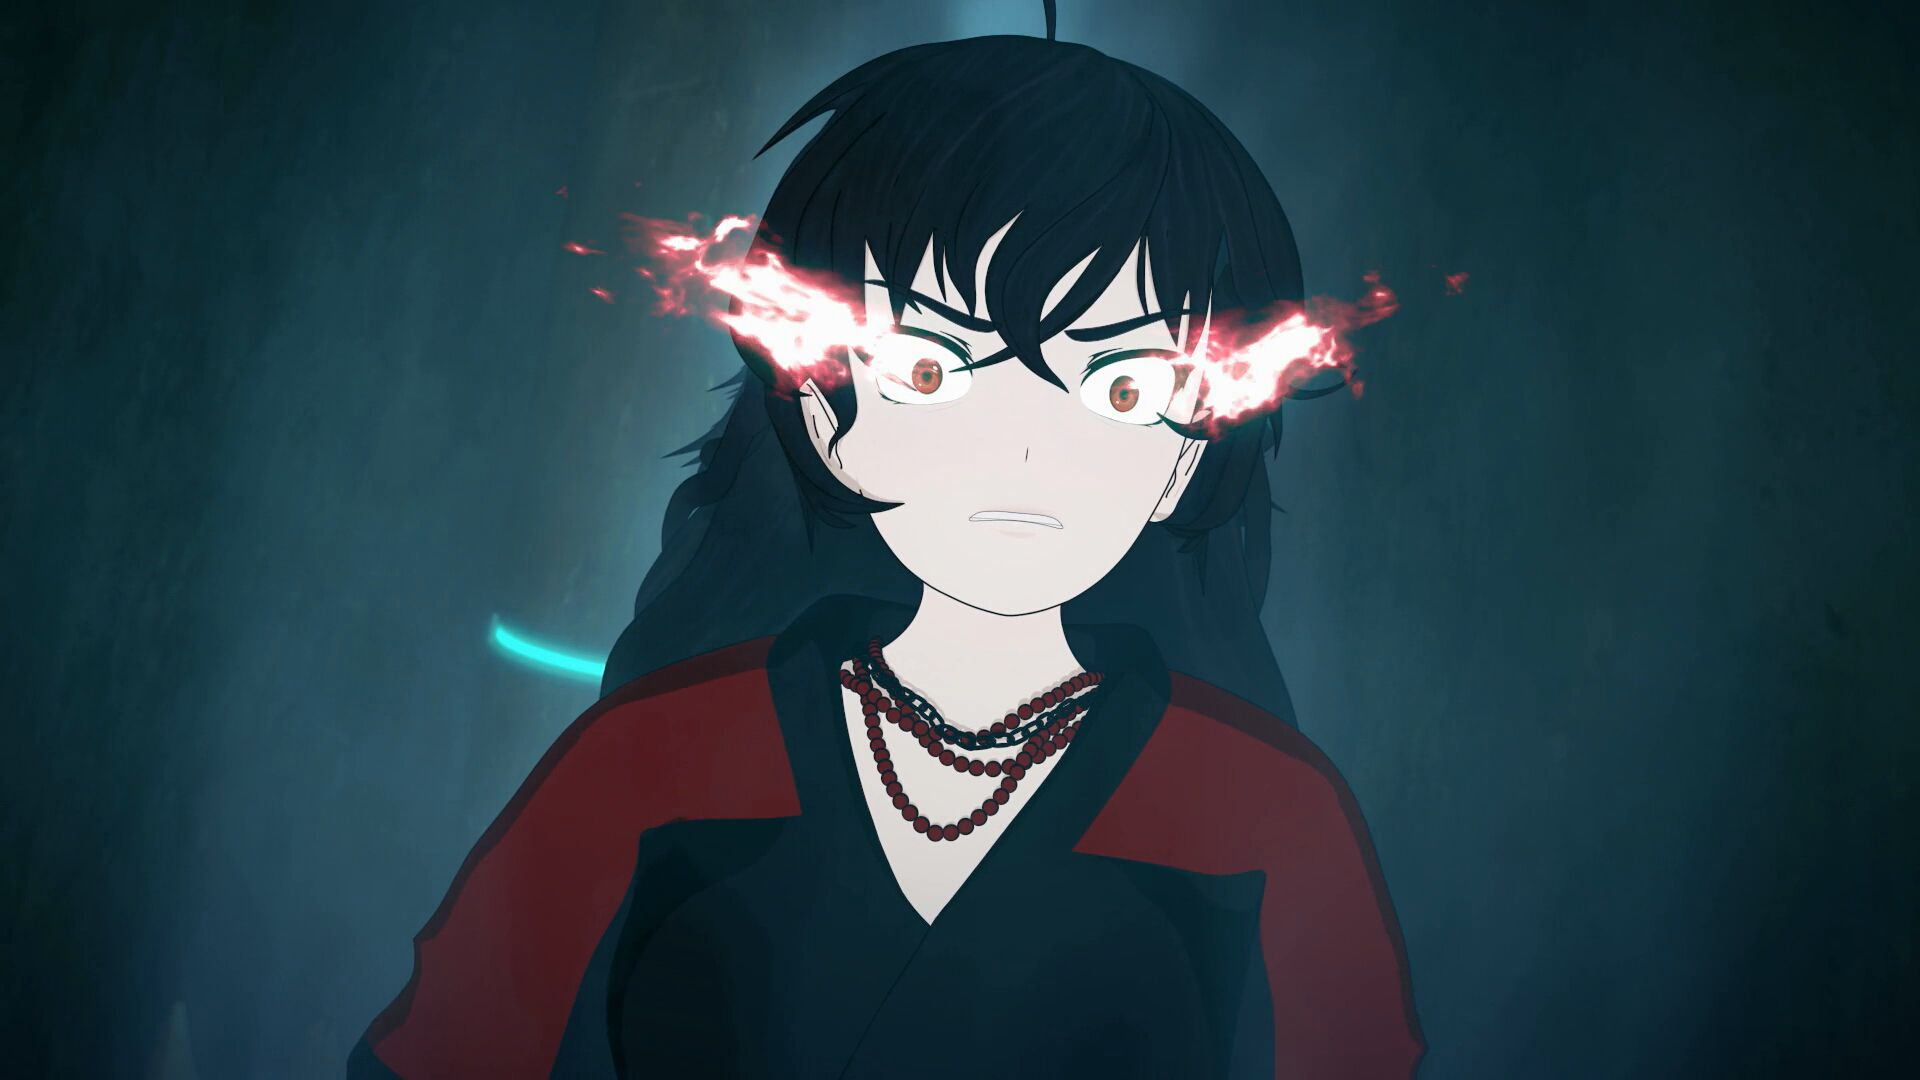 Gravity Falls Fan Art Wallpaper Abused Reader X Rwby You Re The What Page 2 Wattpad